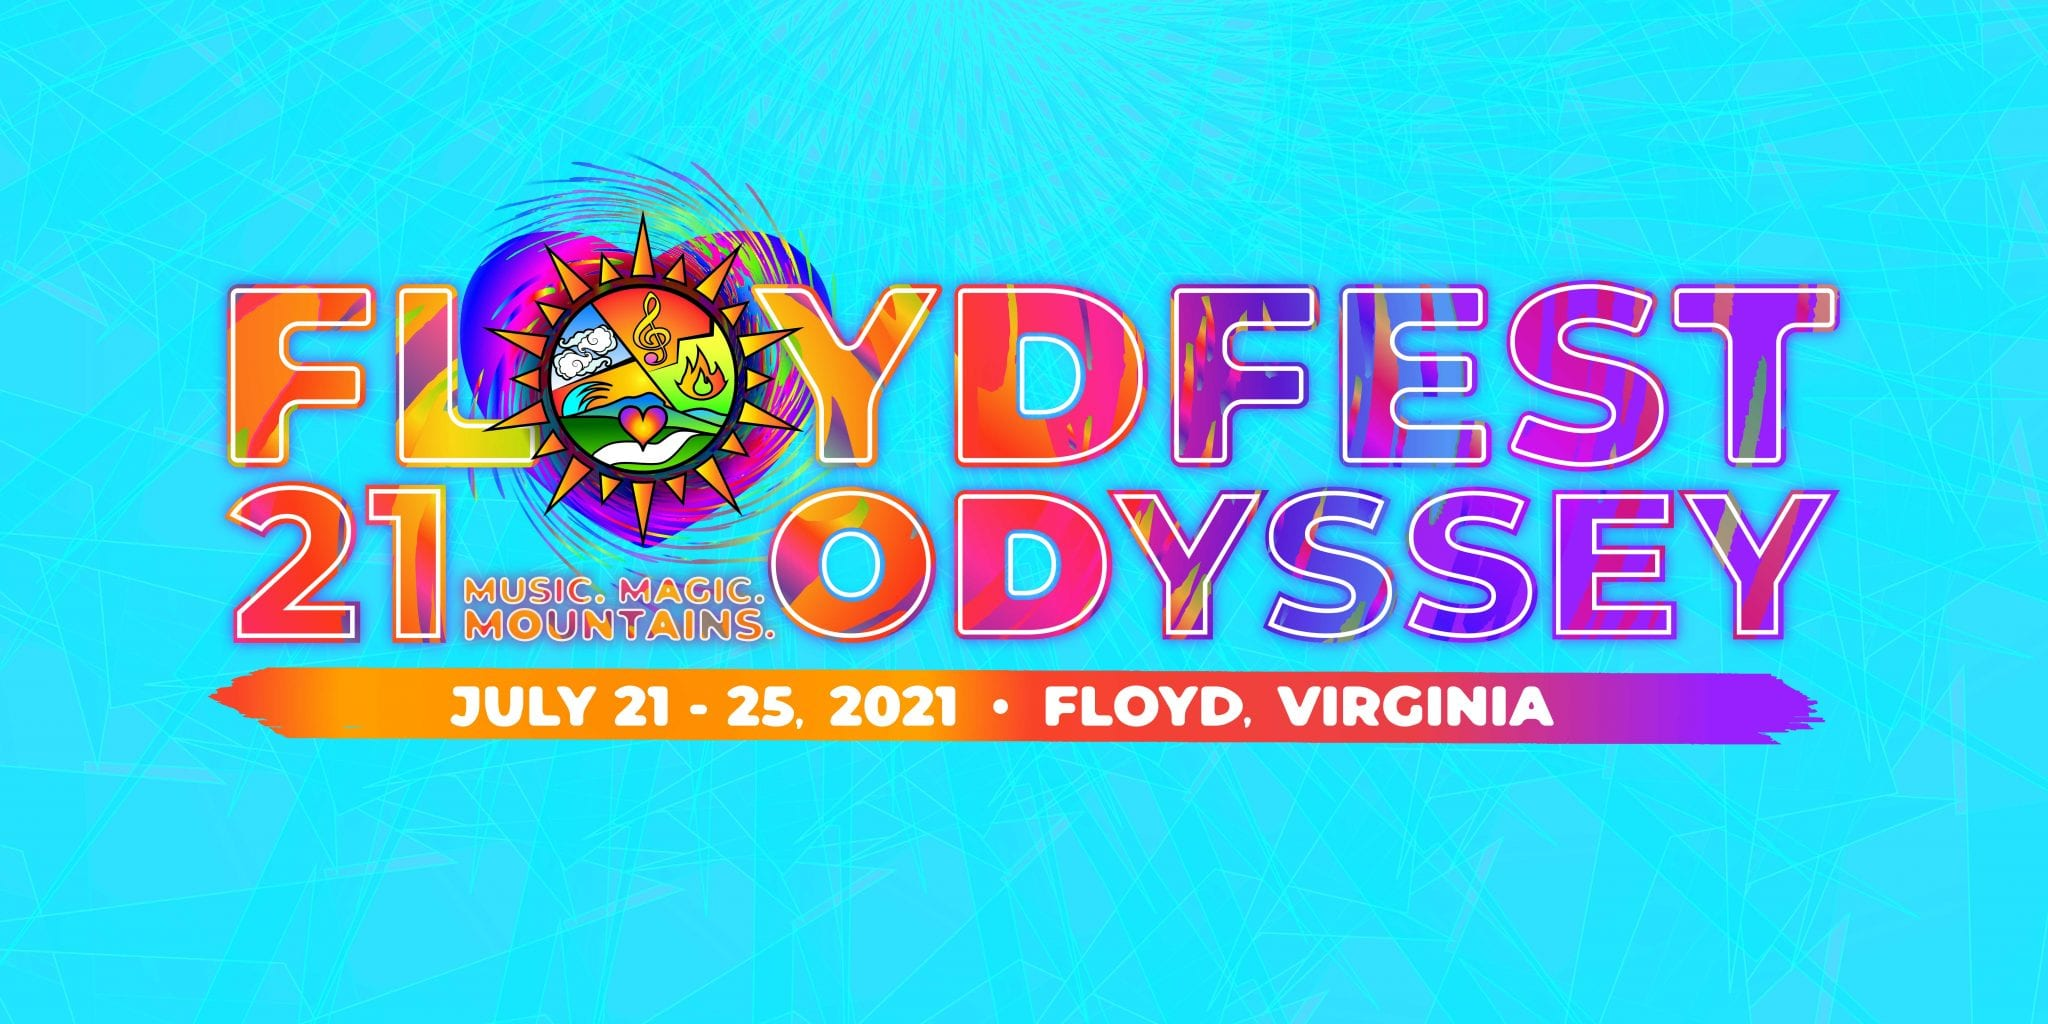 Floydfest 21 Outdoor Music Festival Scheduled For July 21 25 Covid Safety Plan In Place High Country Press